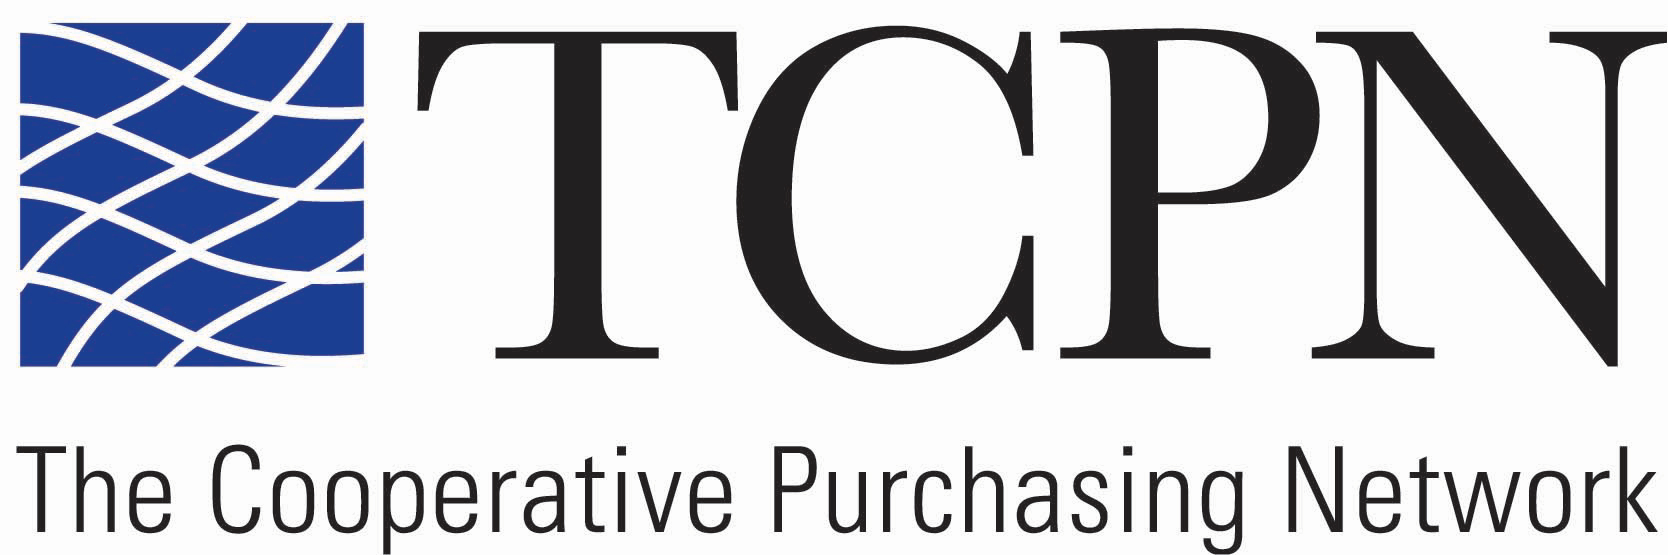 The Cooperative Purchasing Network (TCPN)